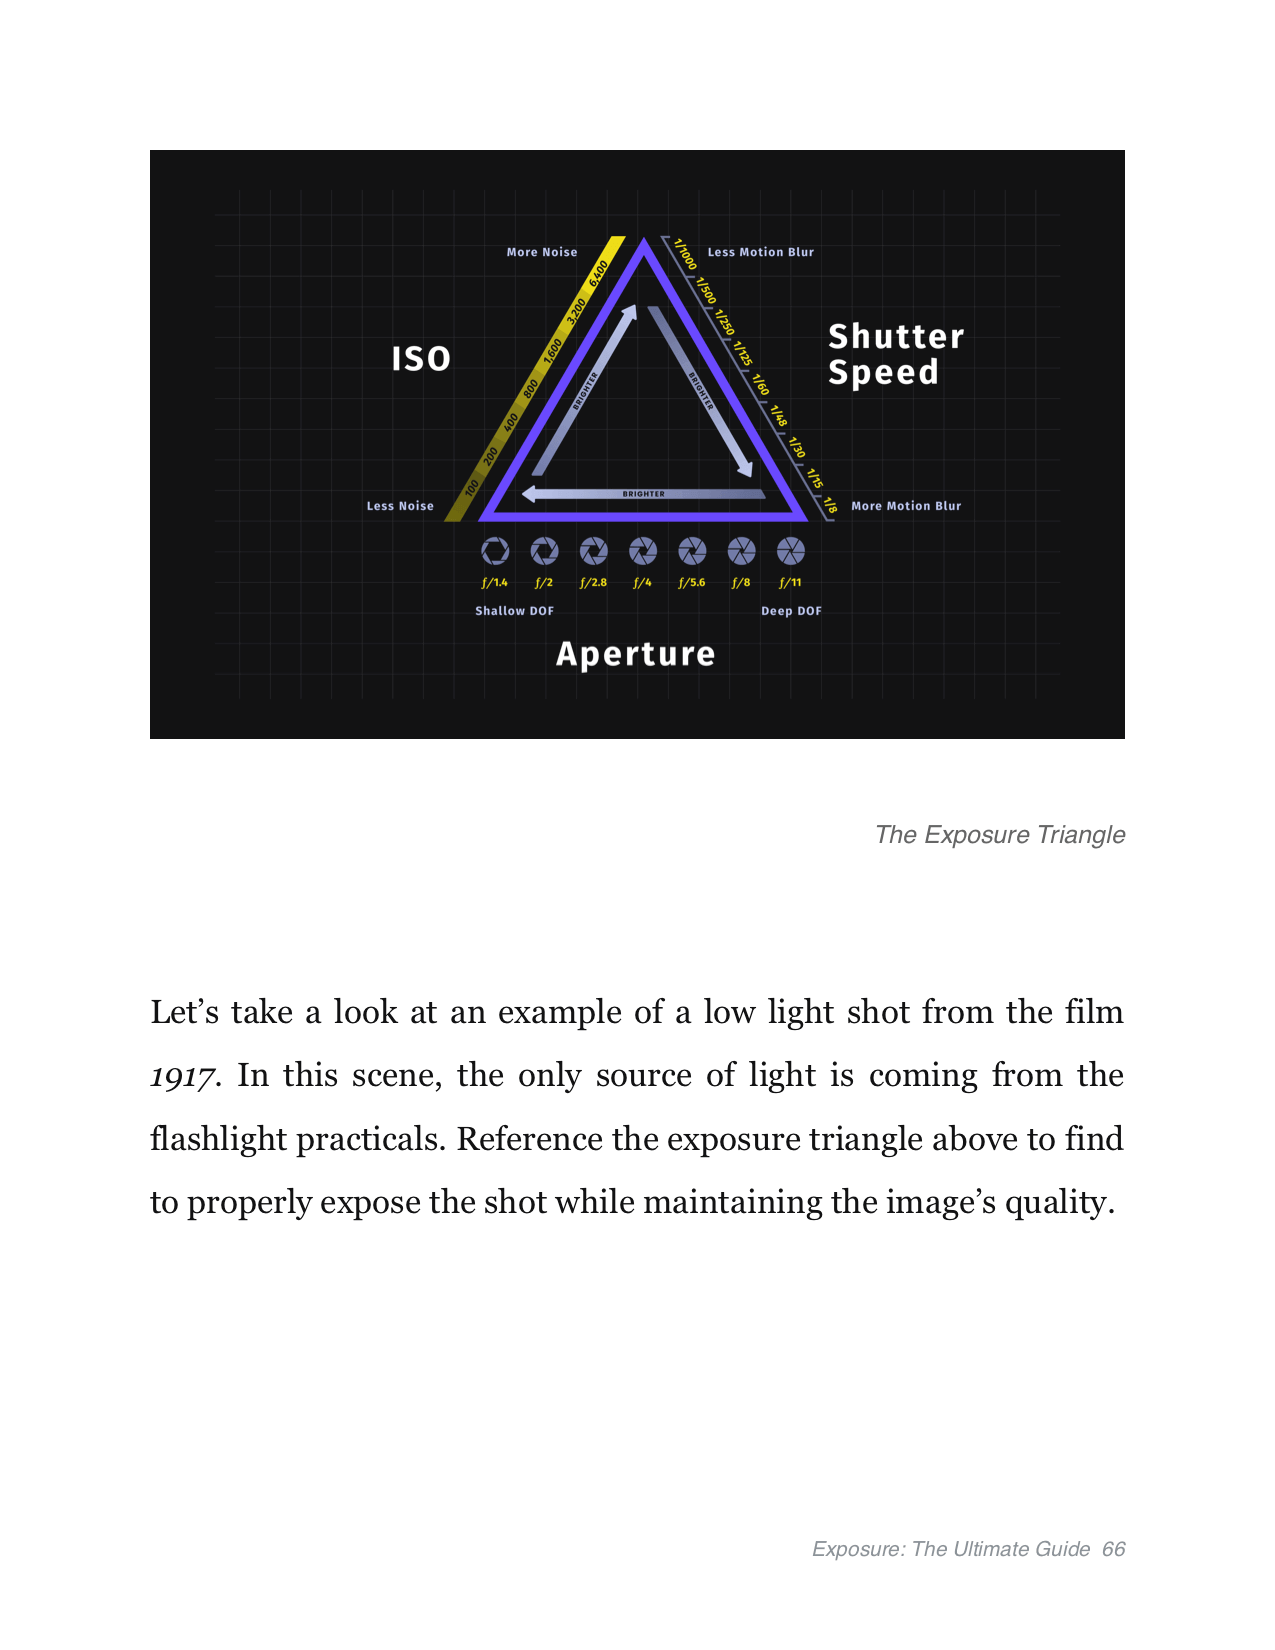 Exposure Triangle Ebook - The Ultimate Guide - Exposure Triangle